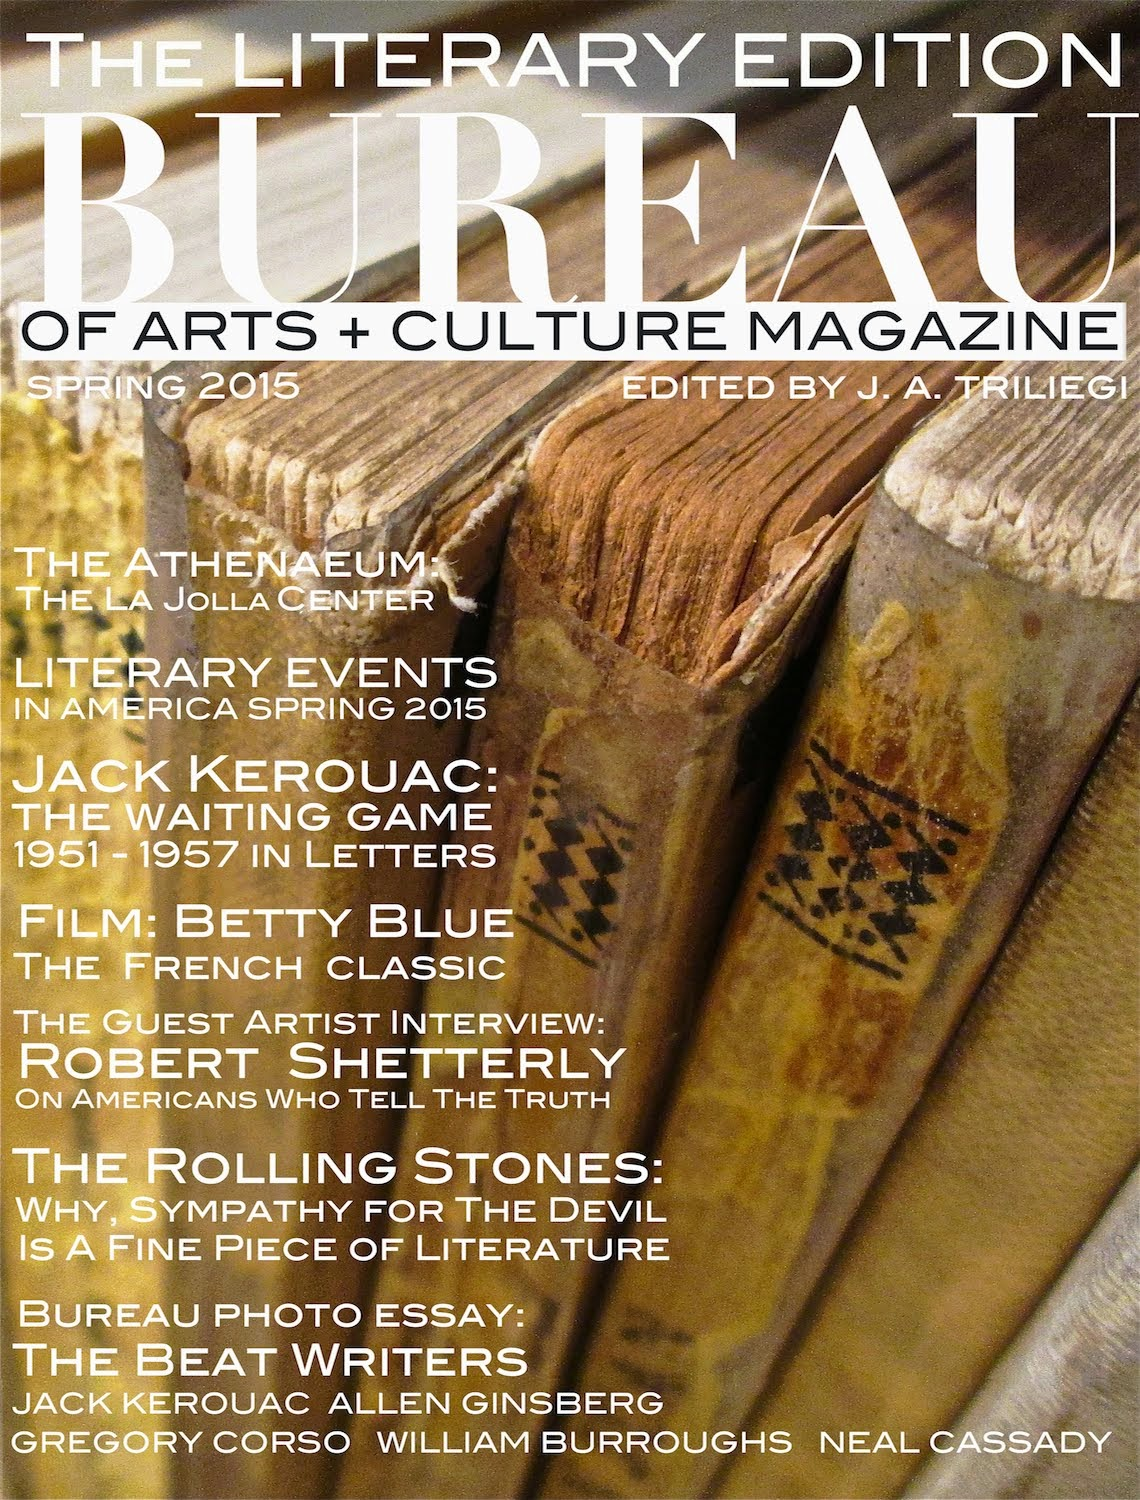 SPRING 2015 LITERARY EDITION OF MAGAZINE